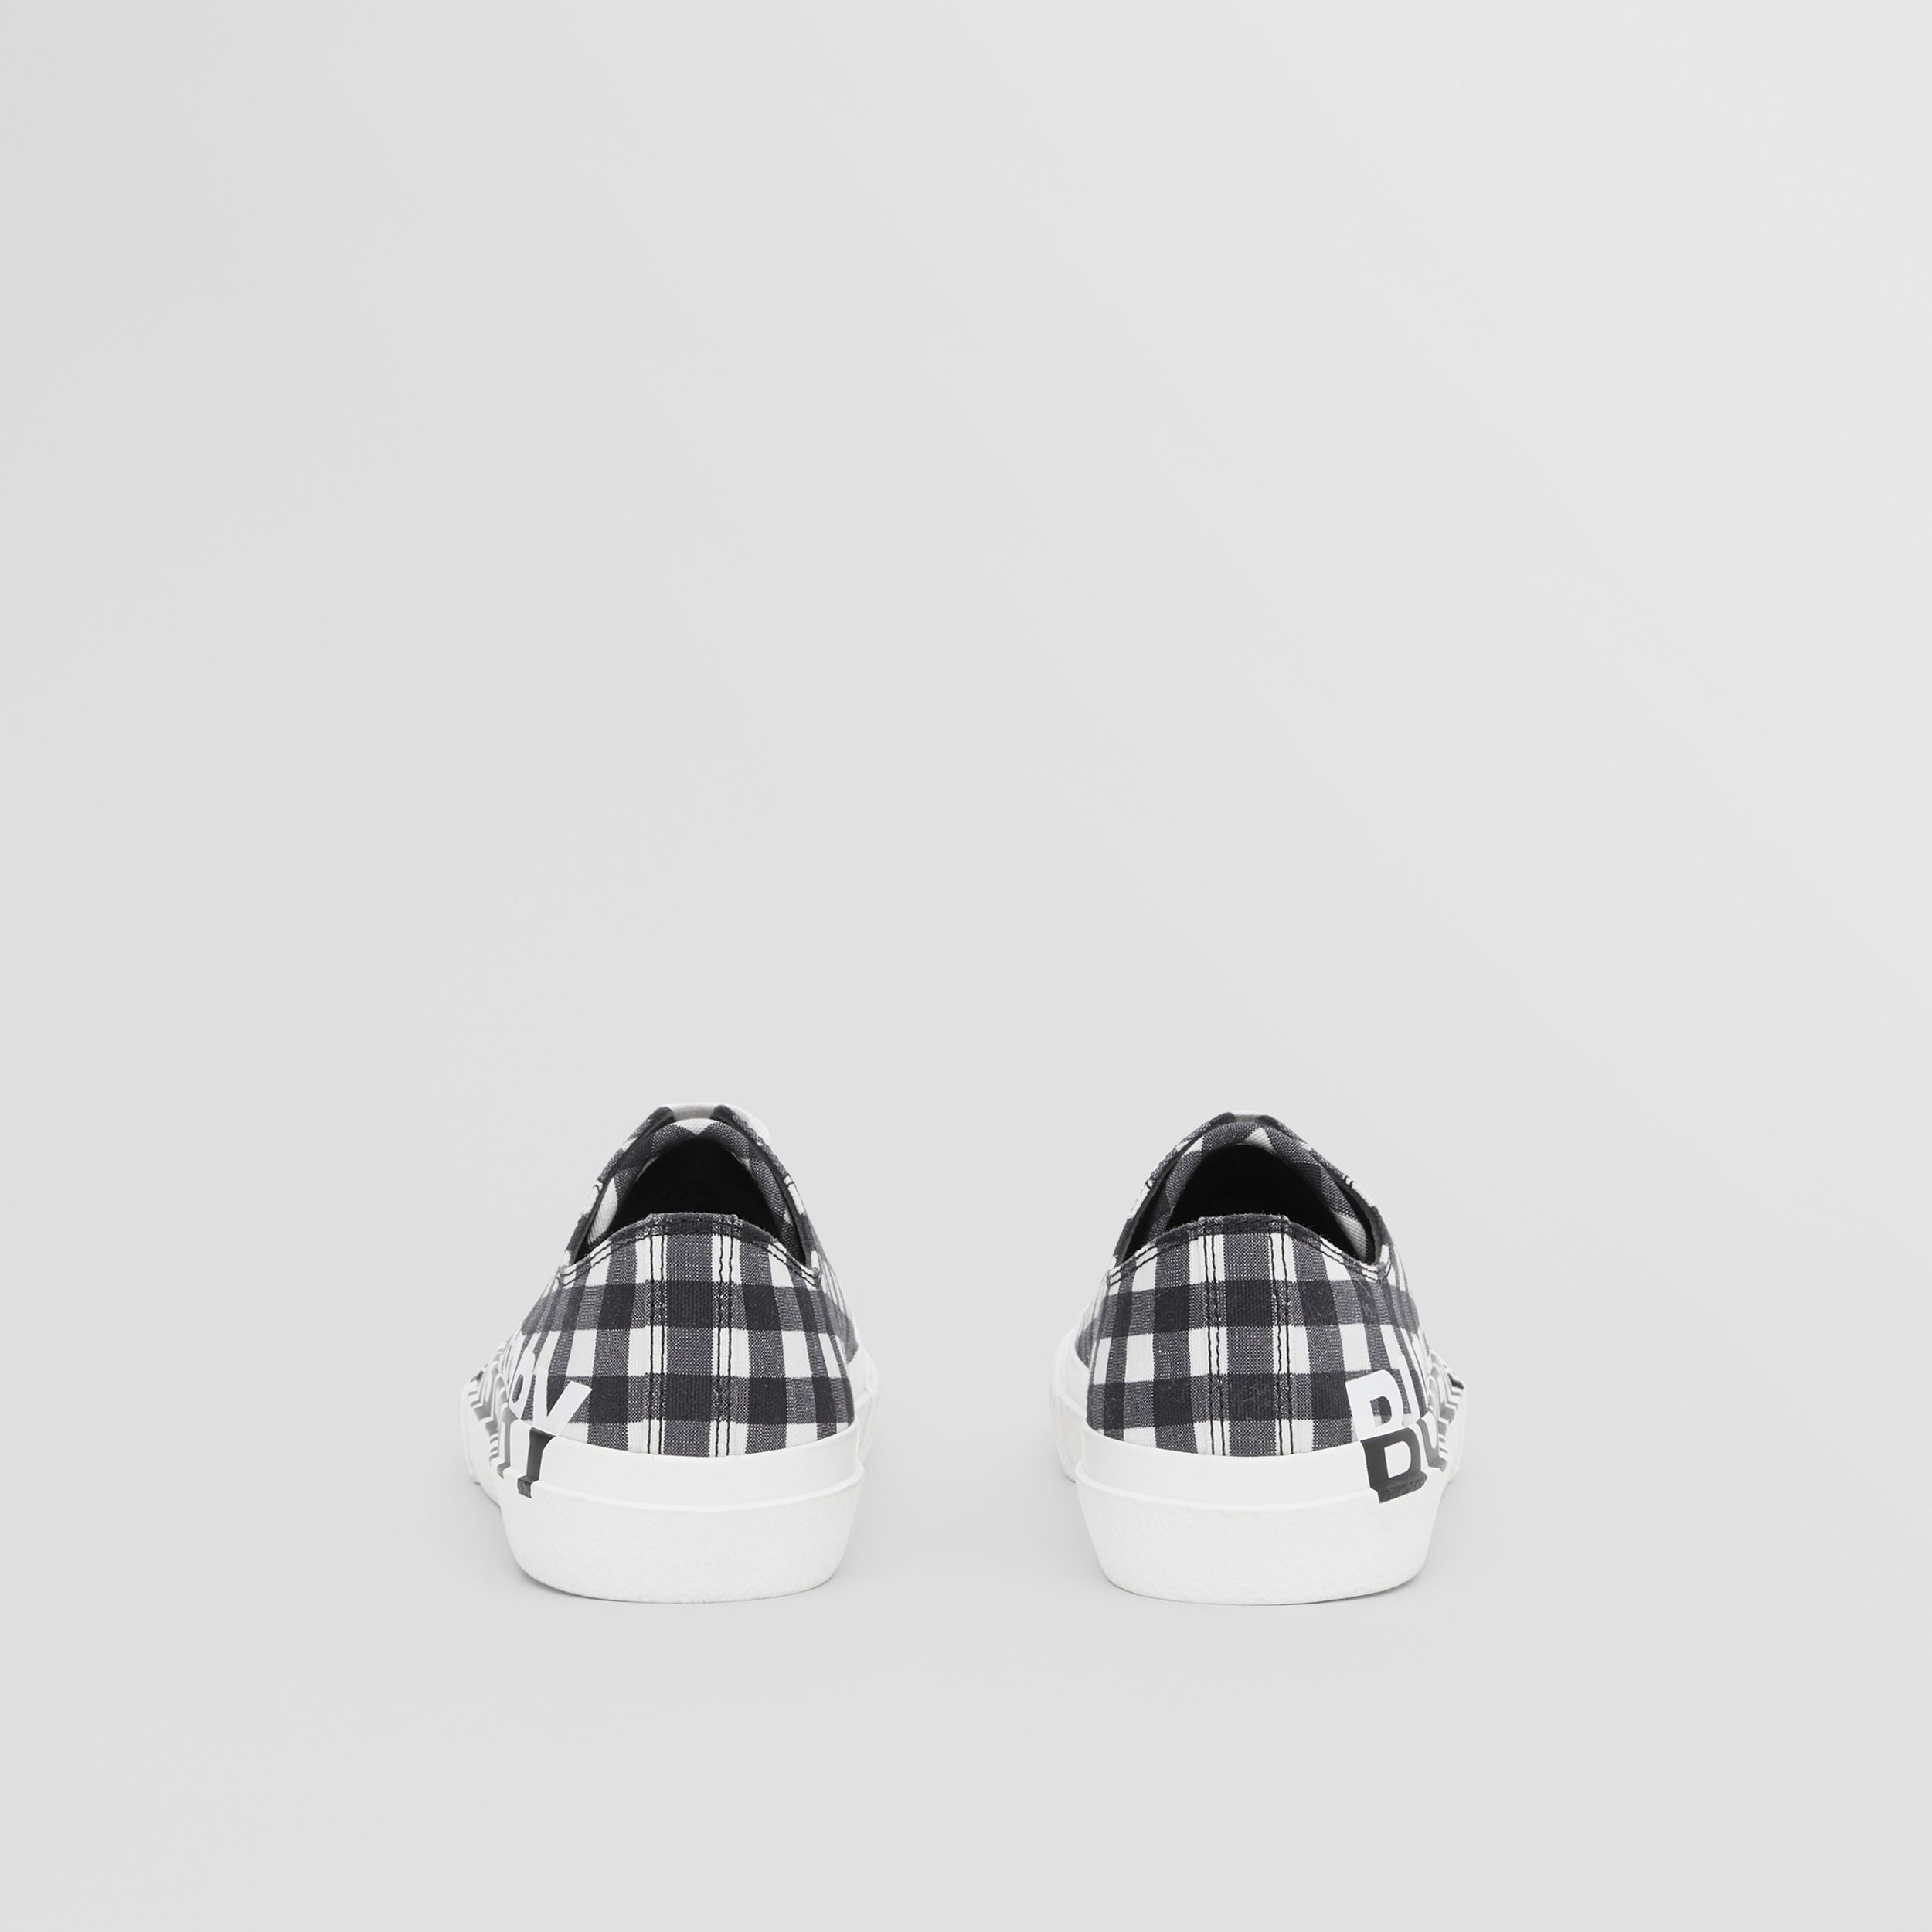 Logo Print Gingham Cotton Sneakers in Black/white - Women | Burberry - 4